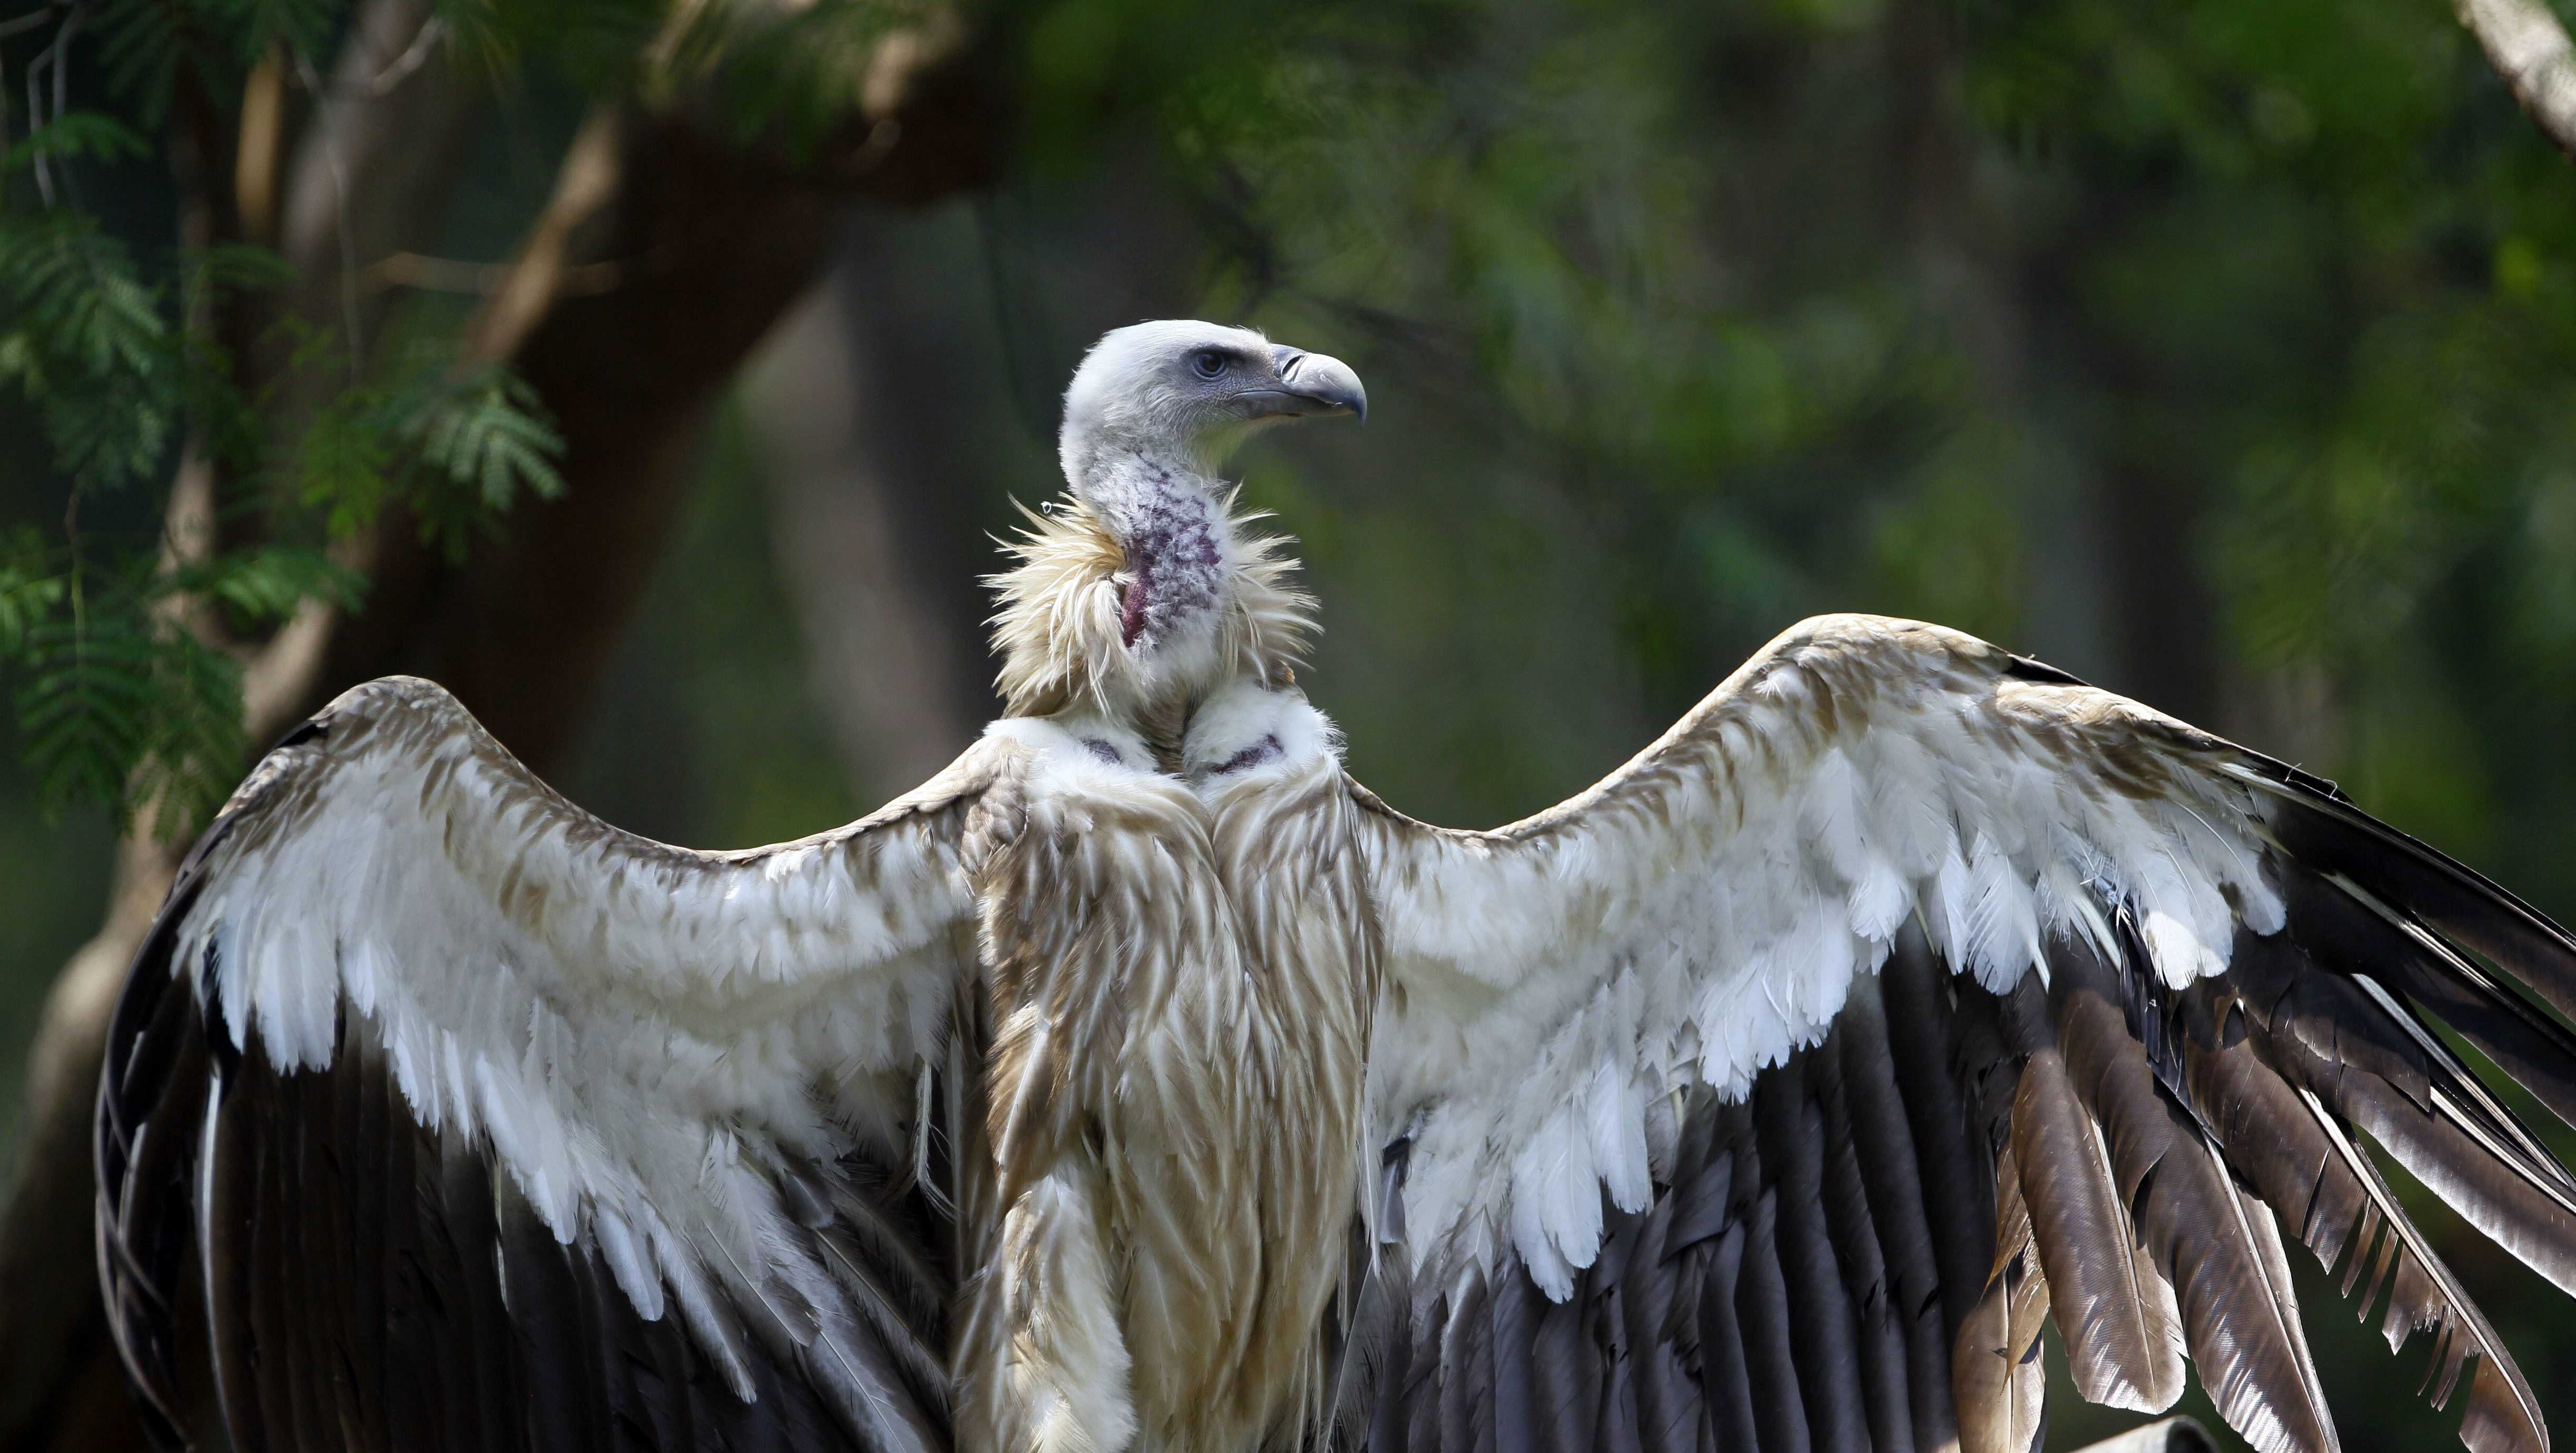 A Himalayan griffon vulture spread its wings at the Zoological Garden in Naypyitaw, Myanmar, Sunday, May 7, 2017. (AP Photo/Aung Shine Oo)